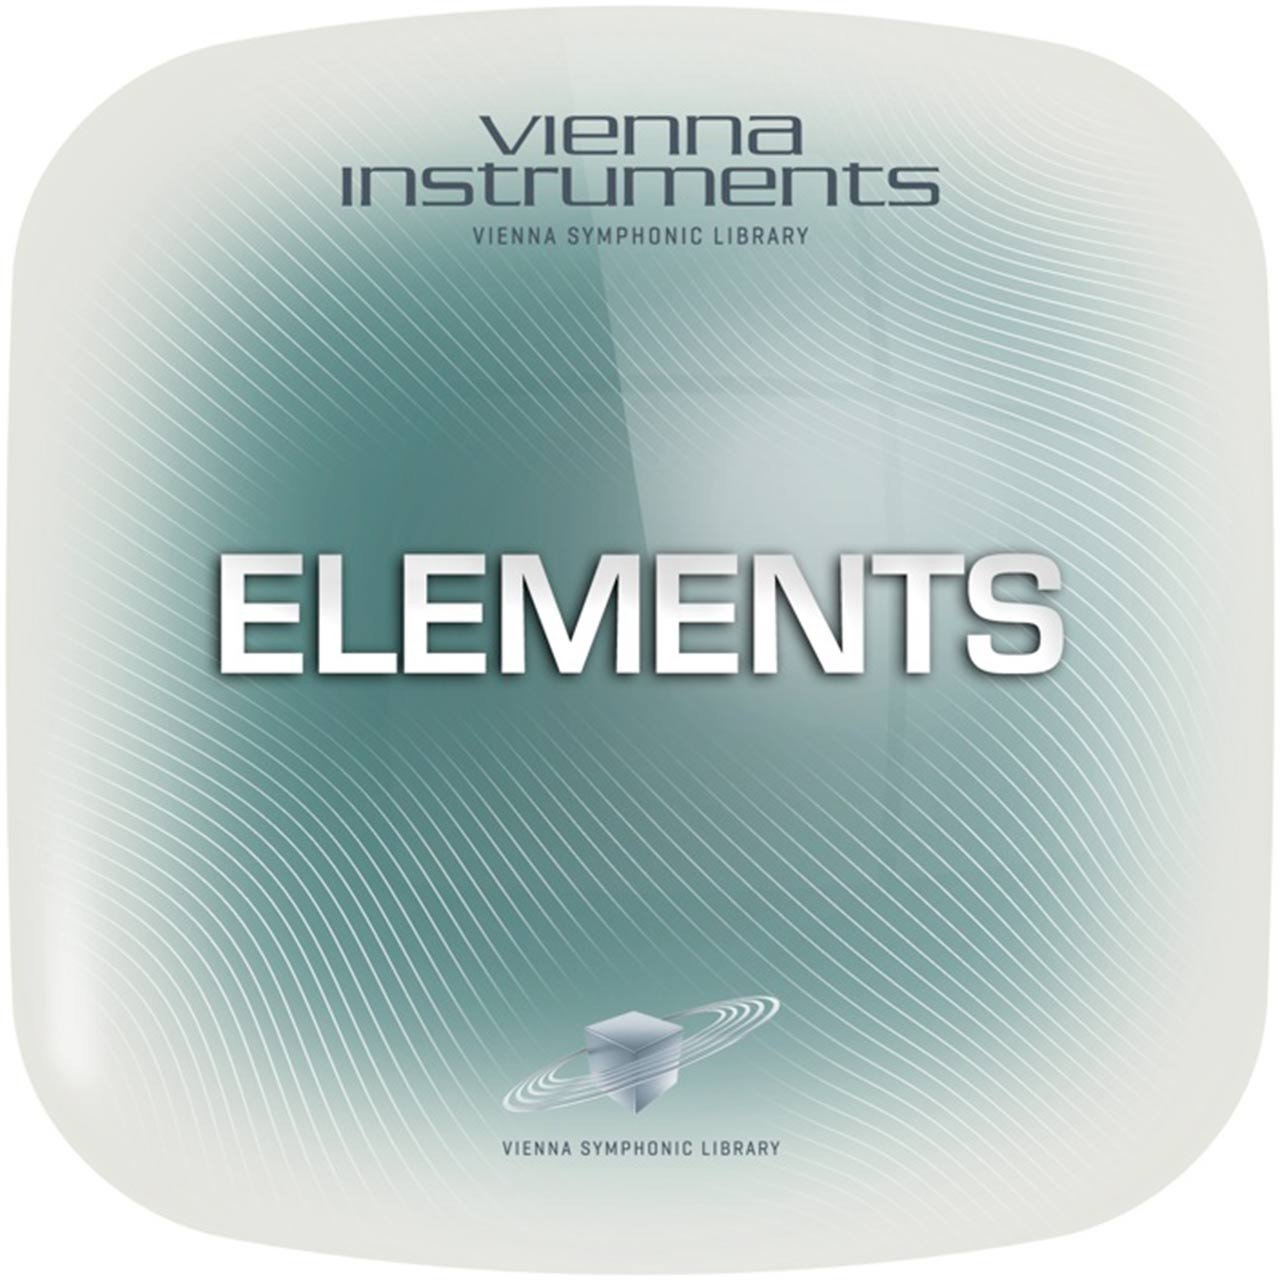 Software Bundles - Vienna Symphonic Library VSL - ELEMENTS